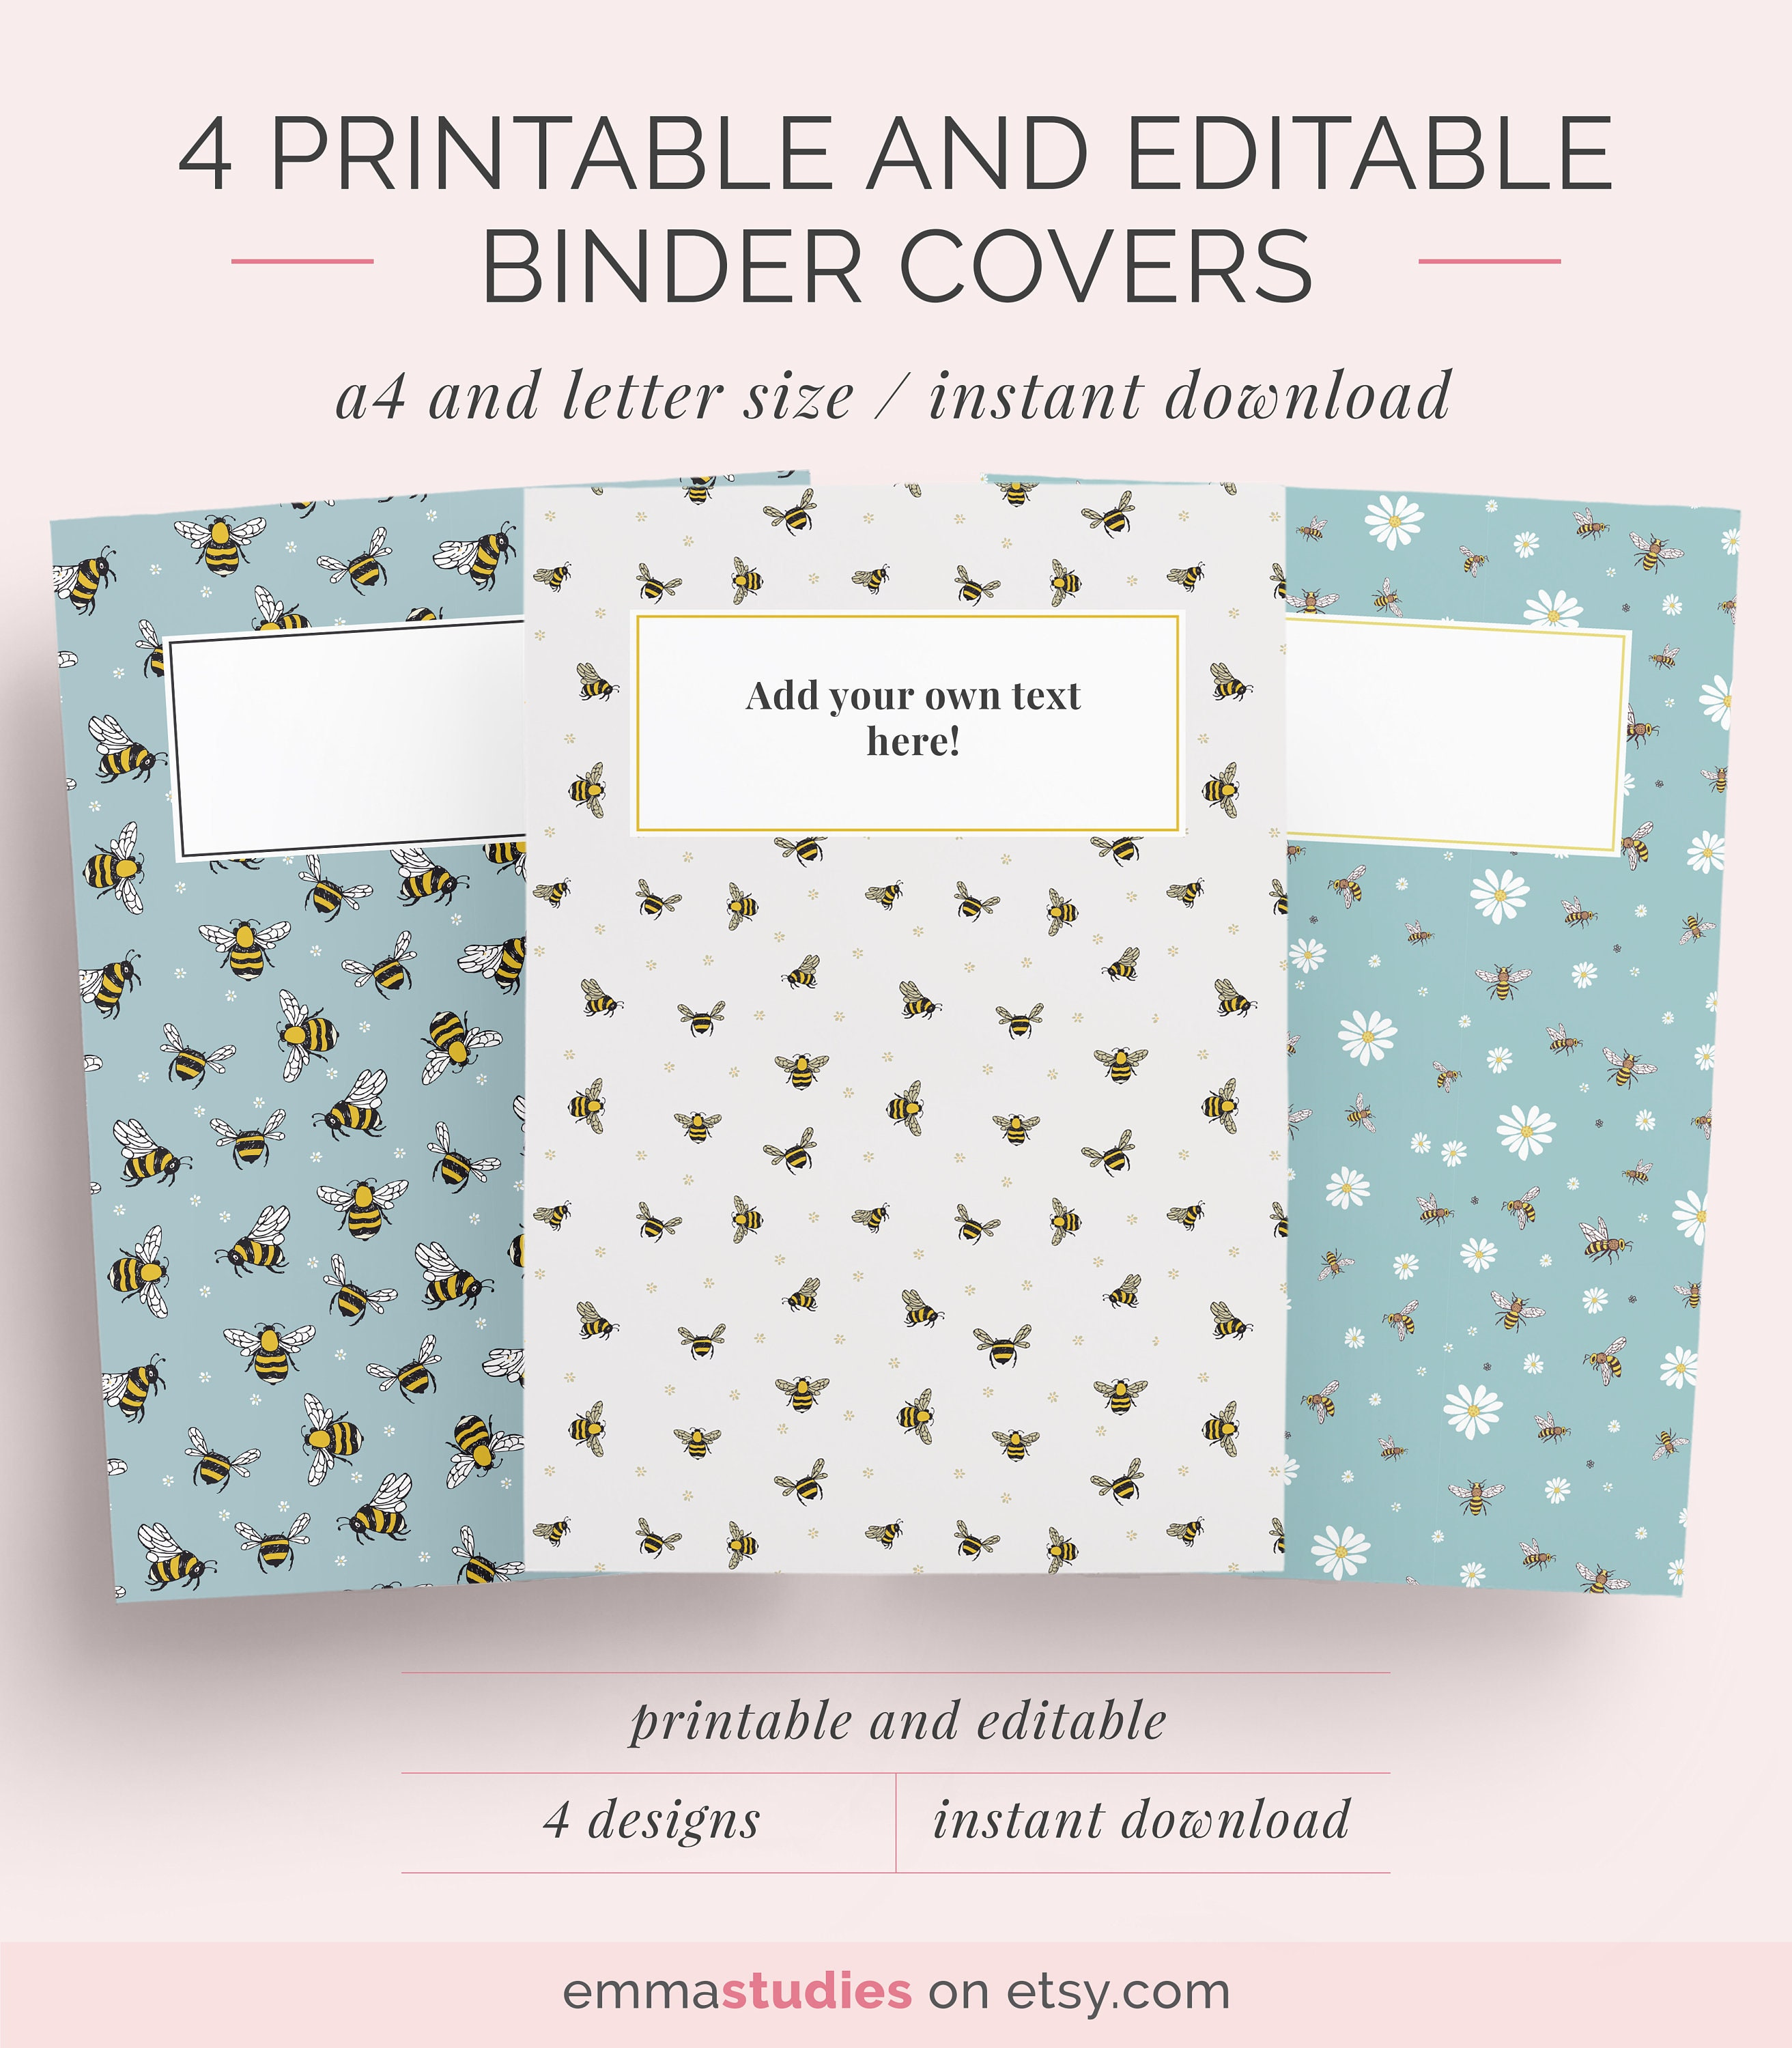 printable editable binder covers a4 and letter folder etsy